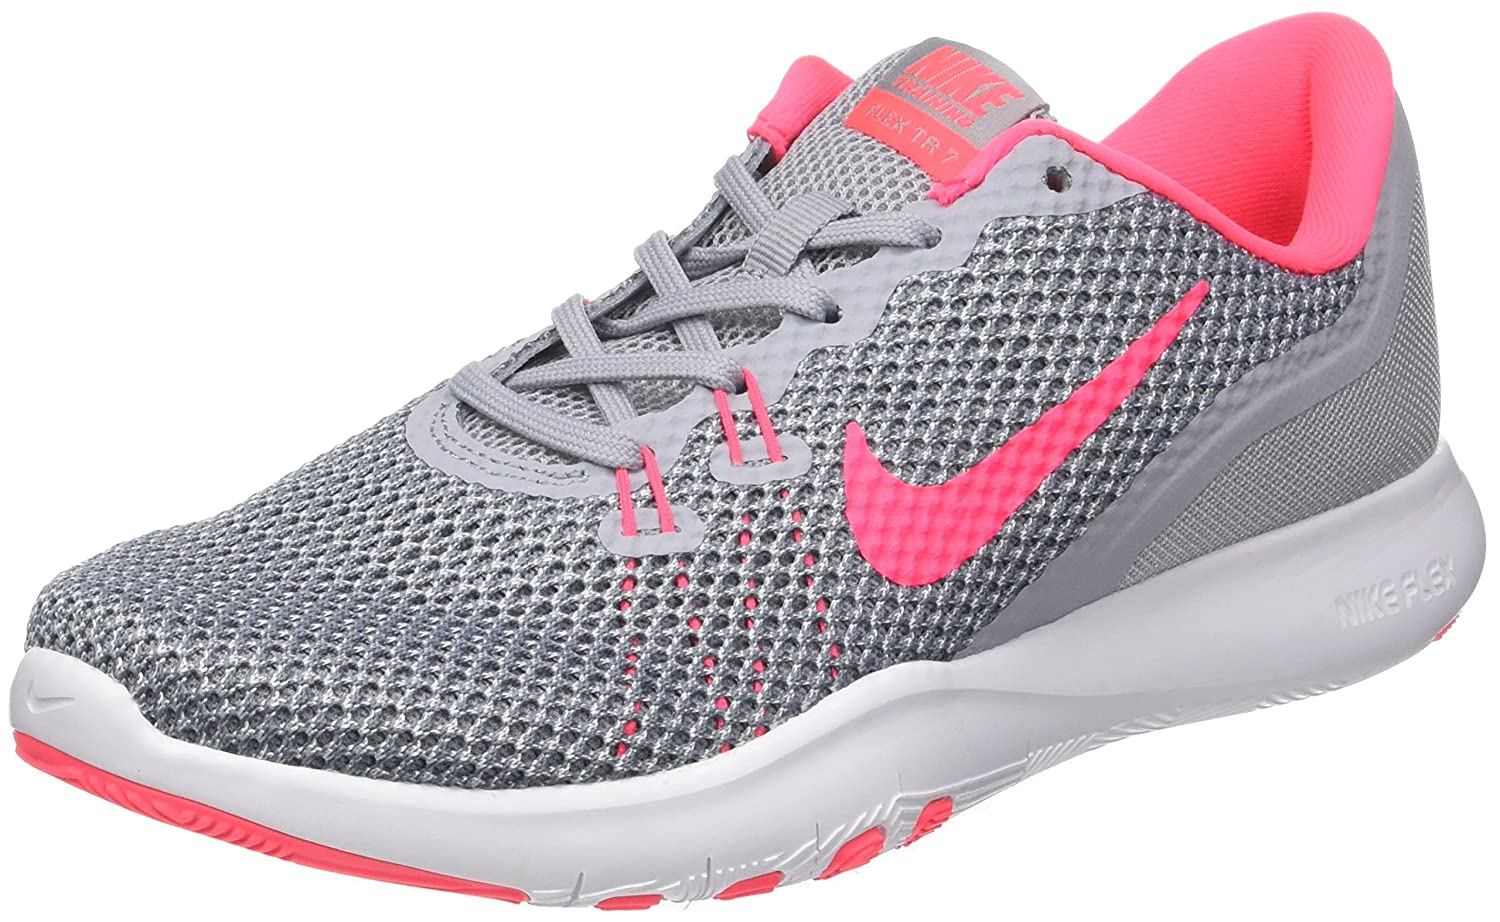 Nike Women's Flex Trainer 5 Shoe B01LPGQ11O 7.5 B(M) US|Wolf Grey/Racer Pink/Stealth